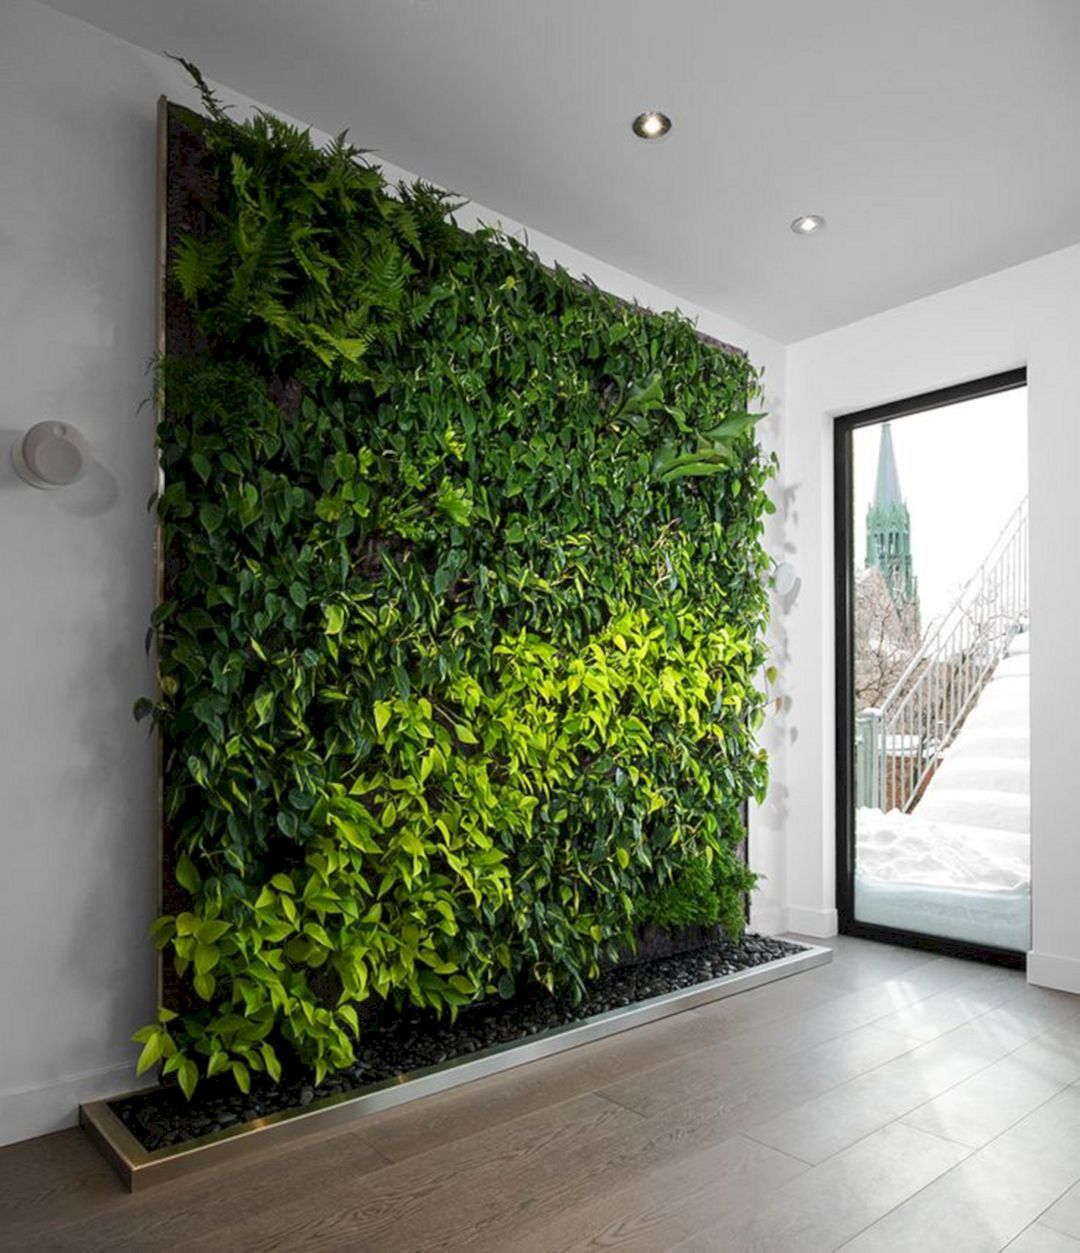 12 Minimalist Indoor Garden Design Inspiration You Should Try Decor It S Vertical Garden Indoor Green Wall Garden Minimalist Garden